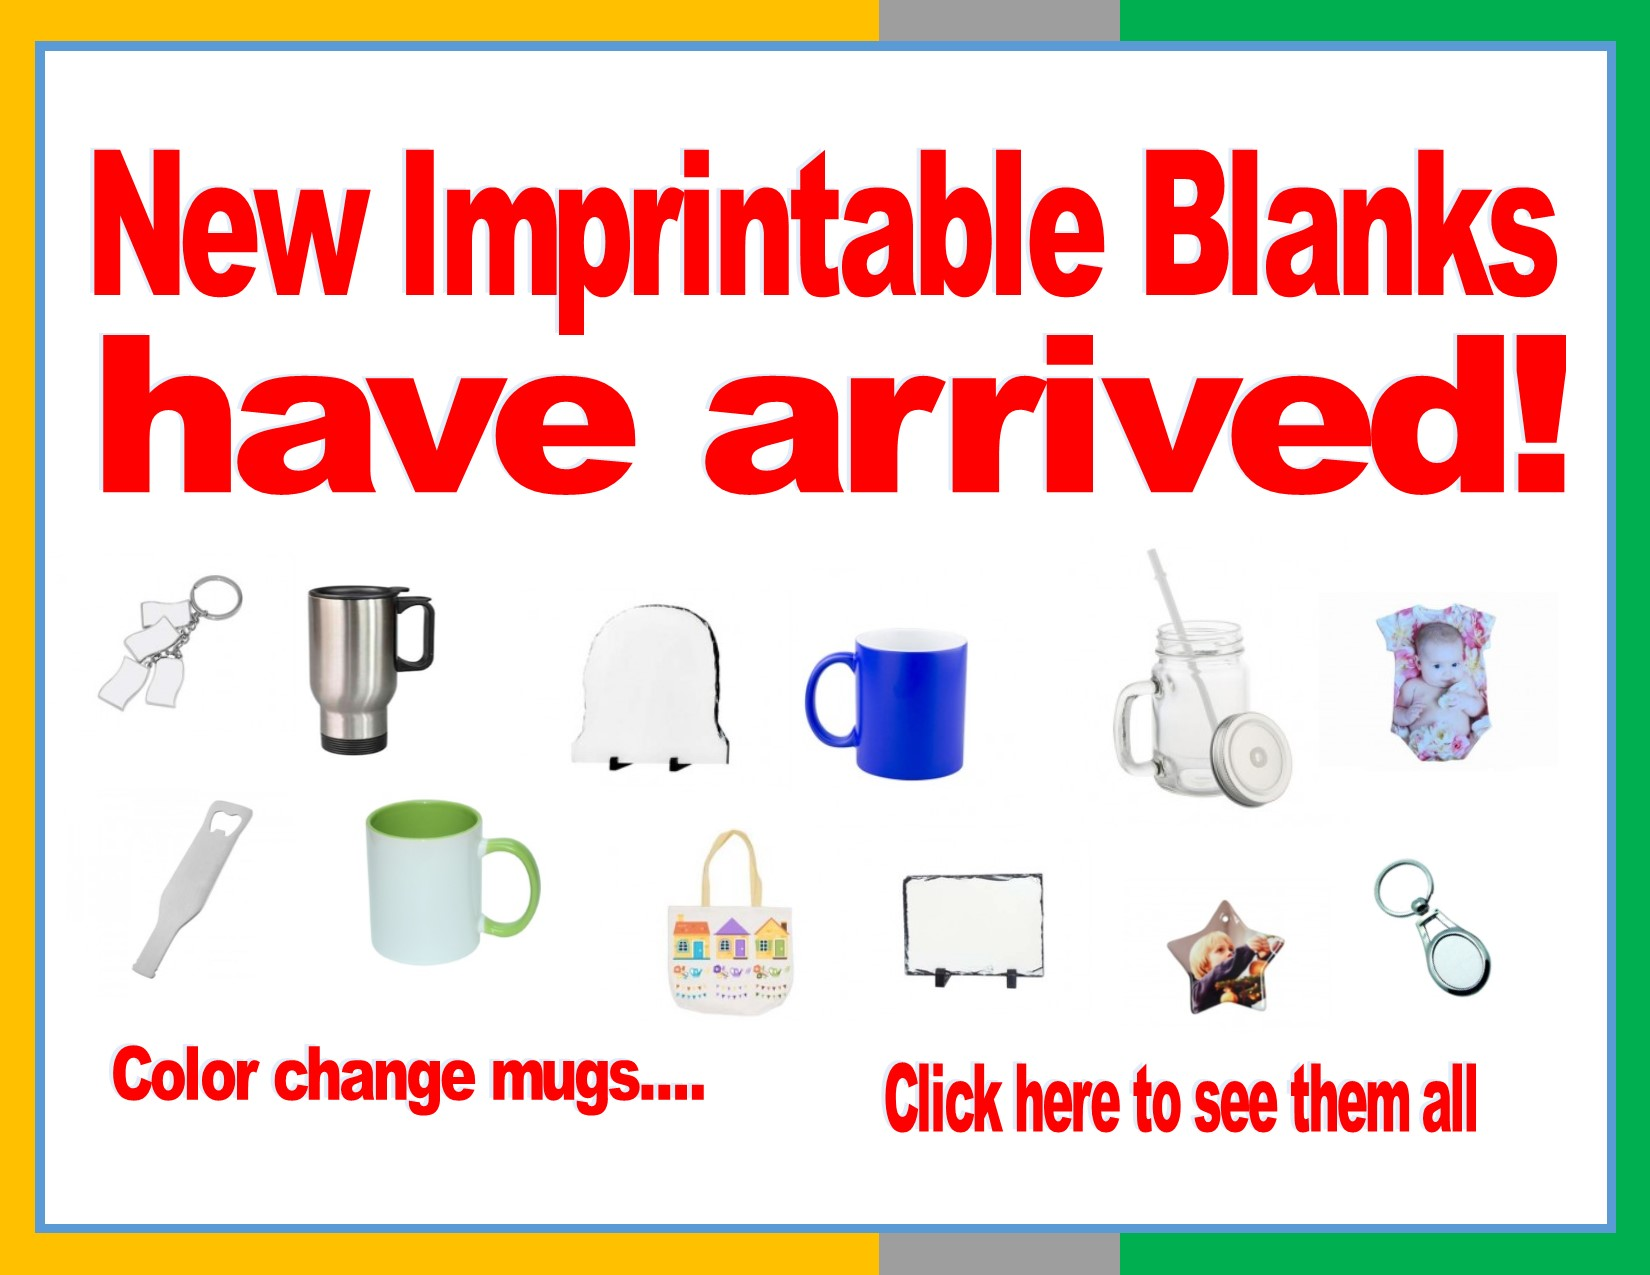 Check our all our new blanks - click here!